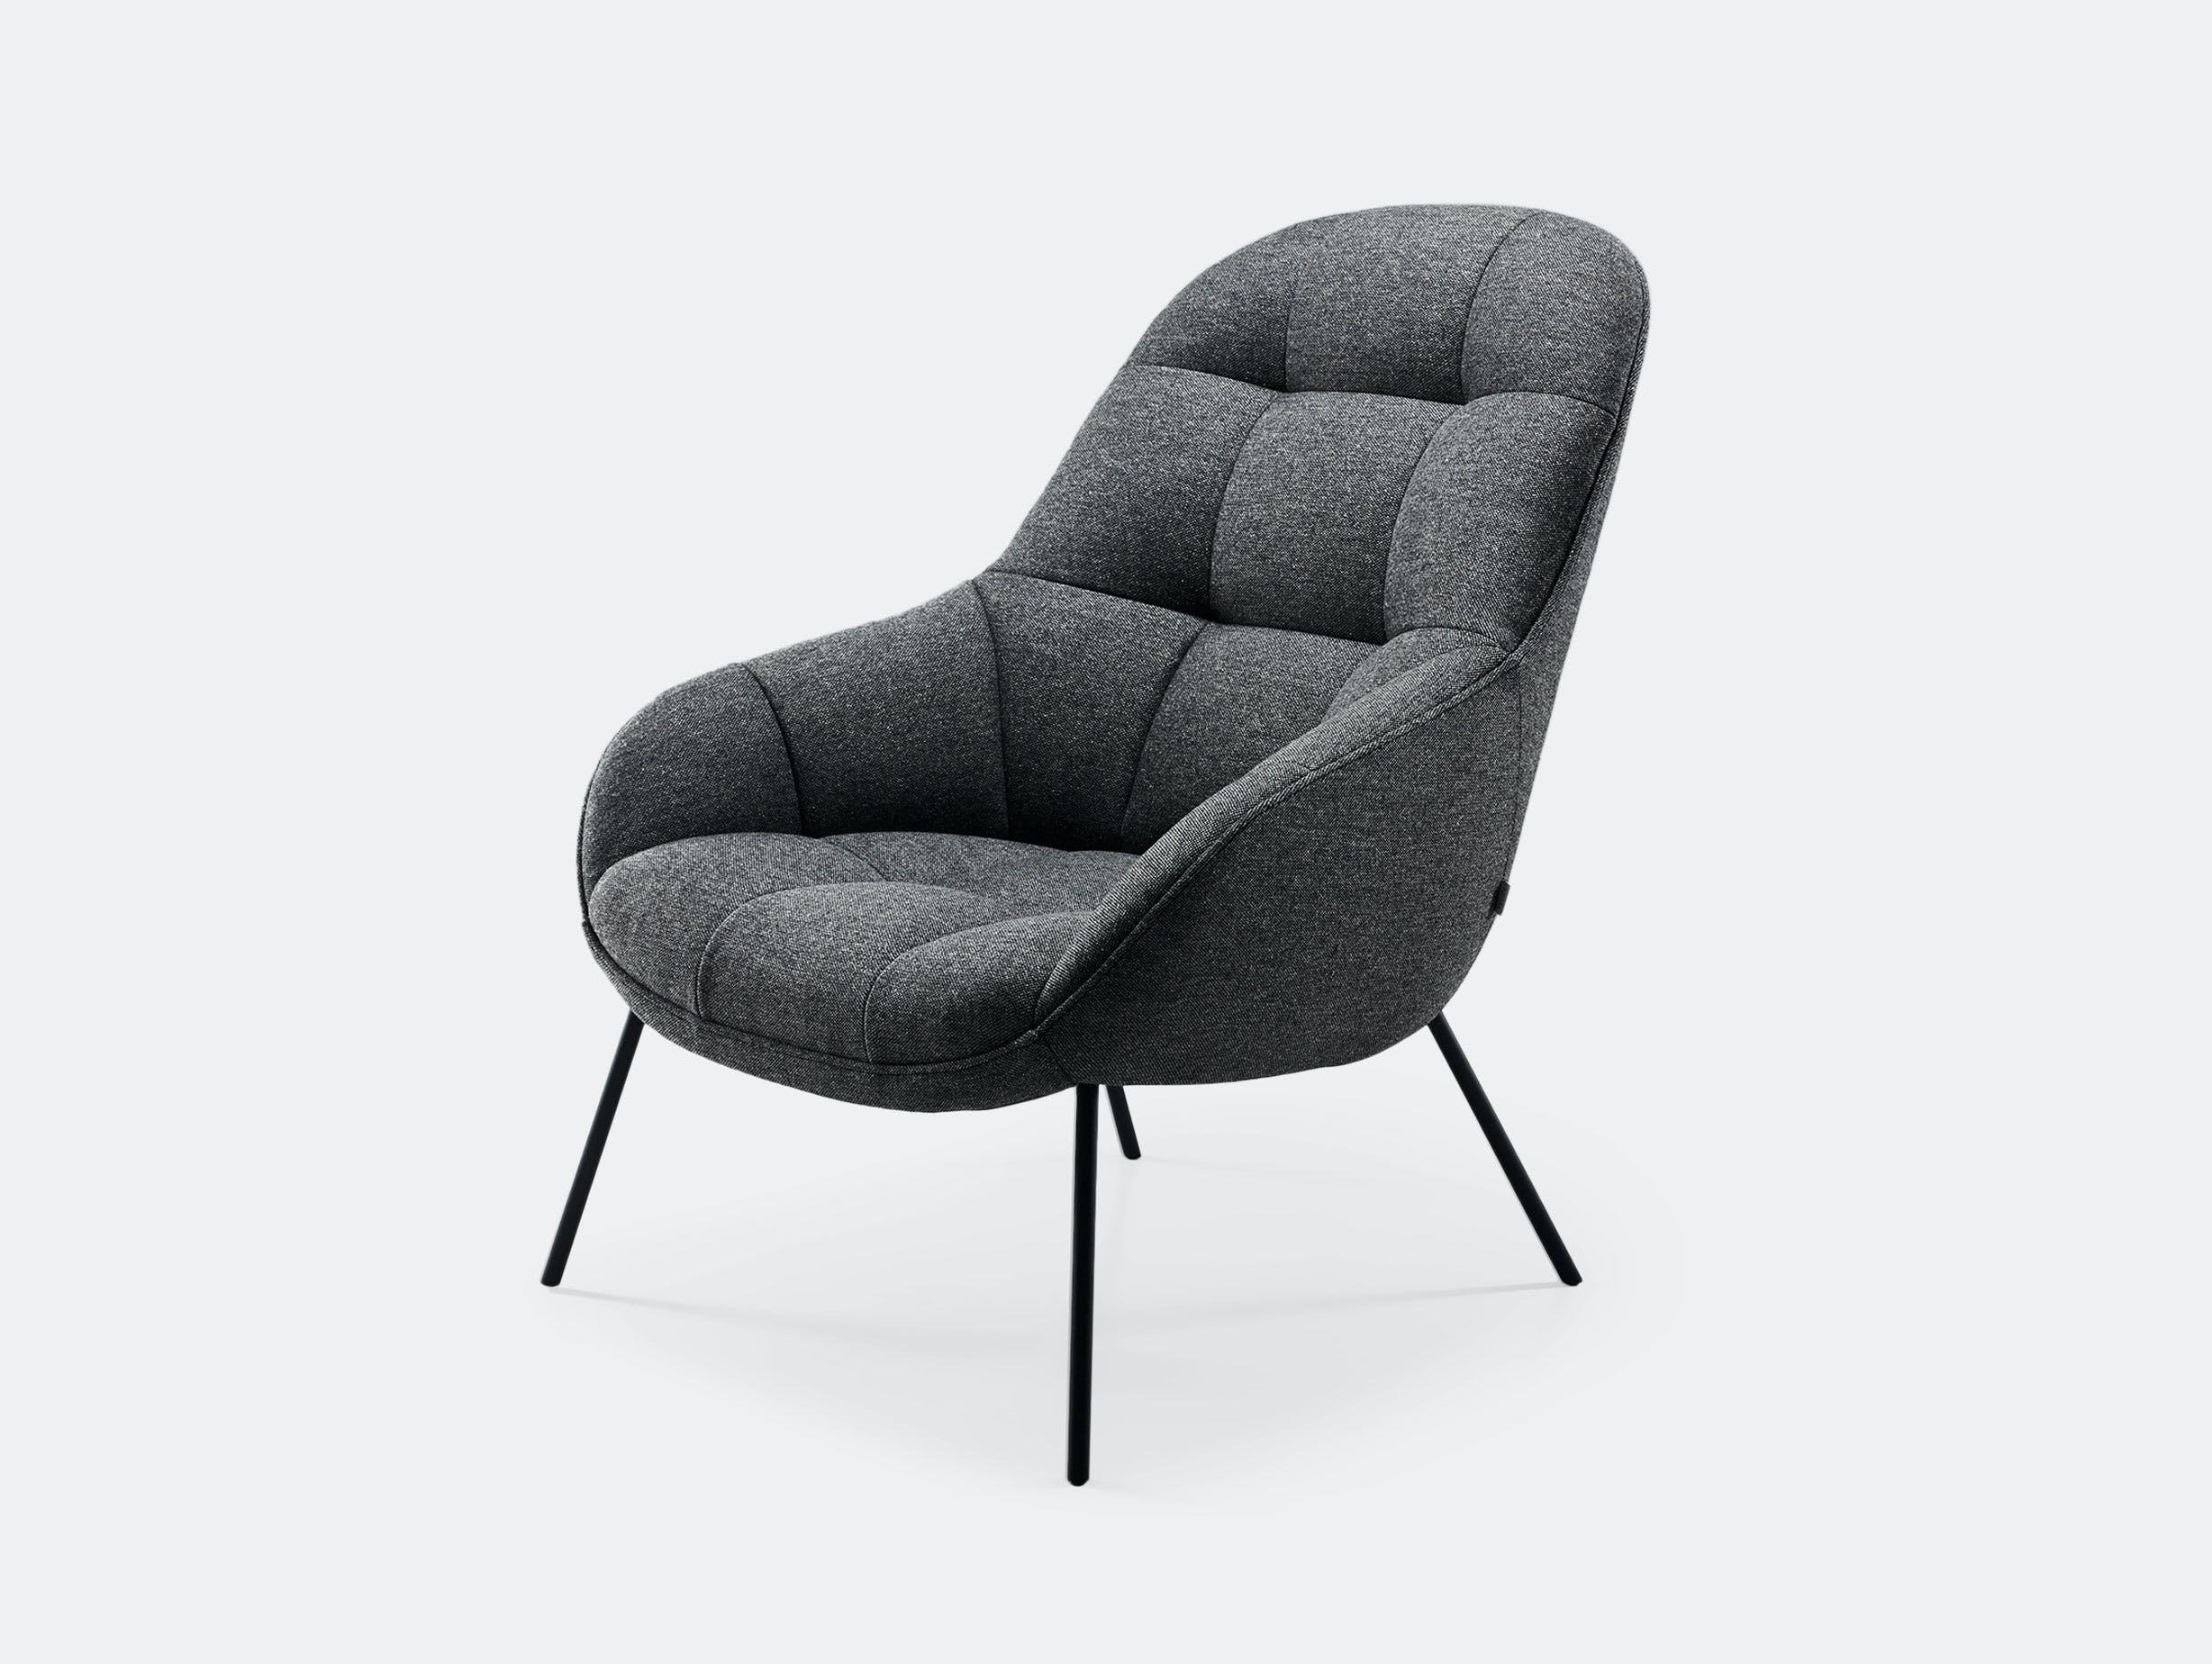 Mango Lounge Chair image